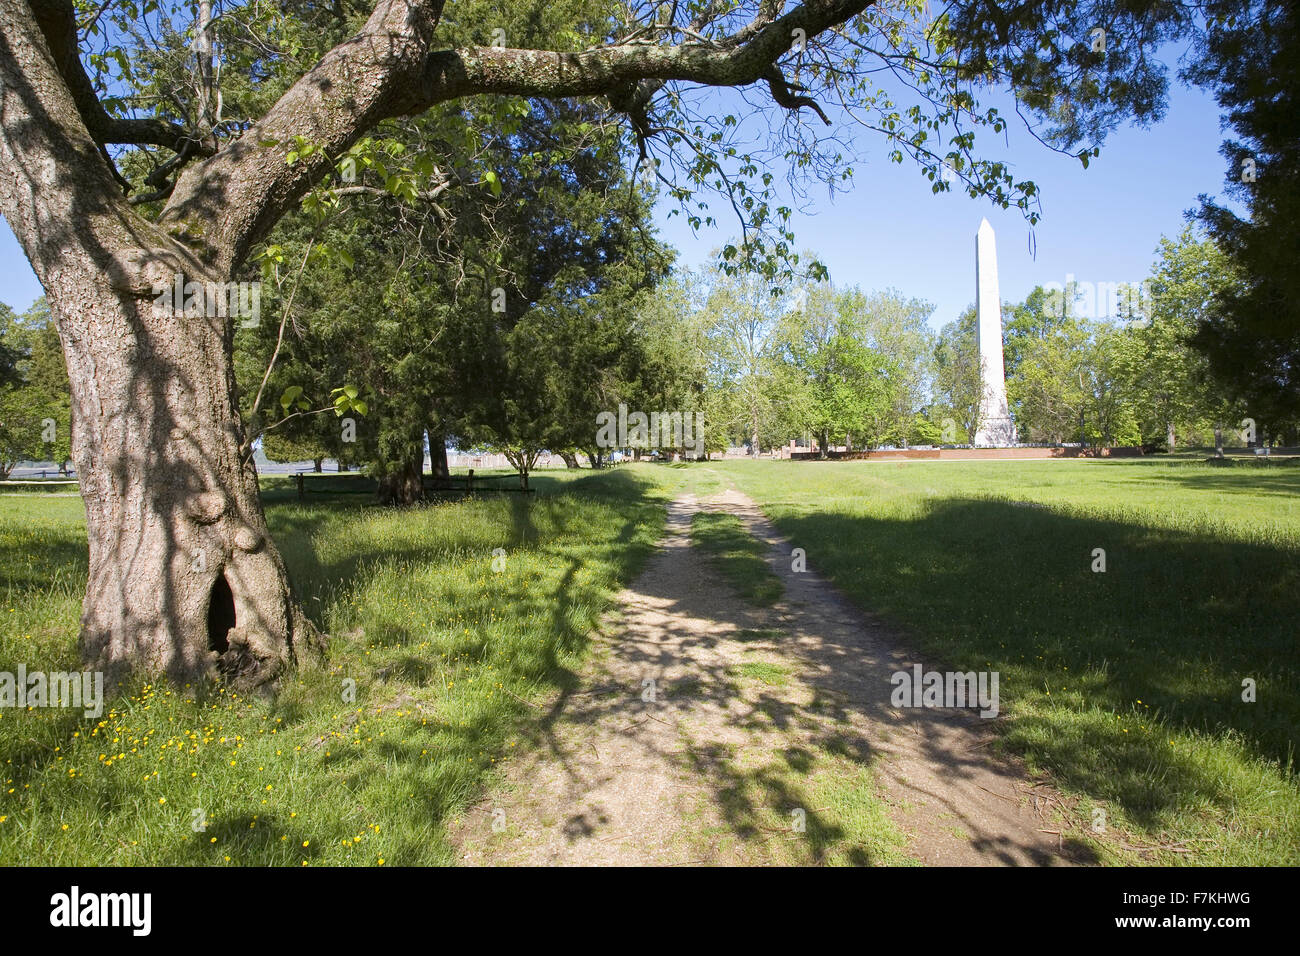 Pathway of New Towne of Jamestown, Jamestown Island, America's Birthplace, Virginia, built after 1620, the very Stock Photo